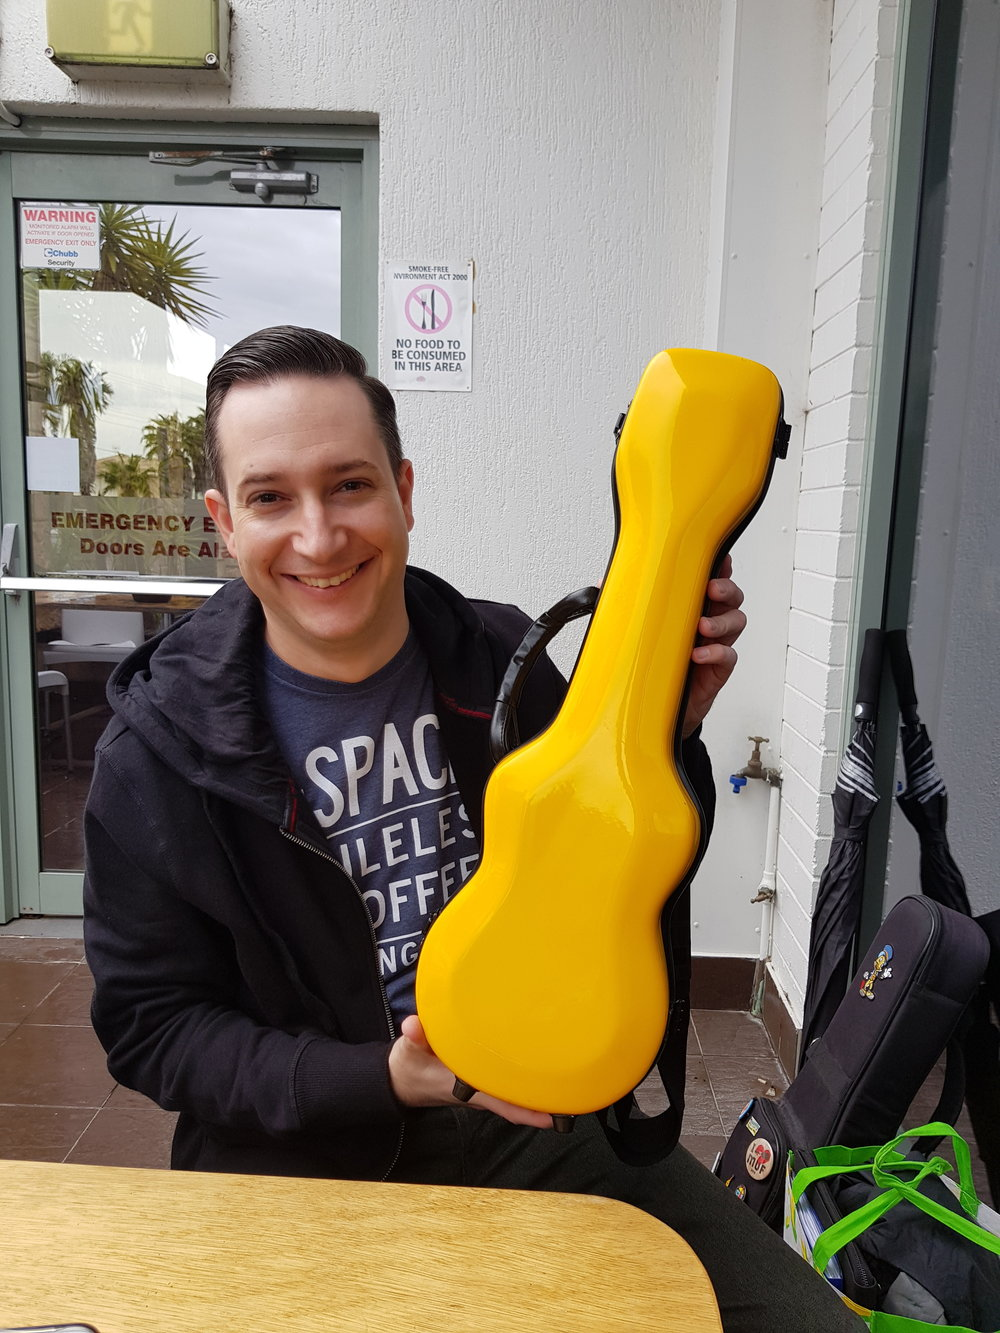 Cameron Murray with the funkiest hard ukulele case I've seen! And it holds his tiny vintage Martin uke very nicely.